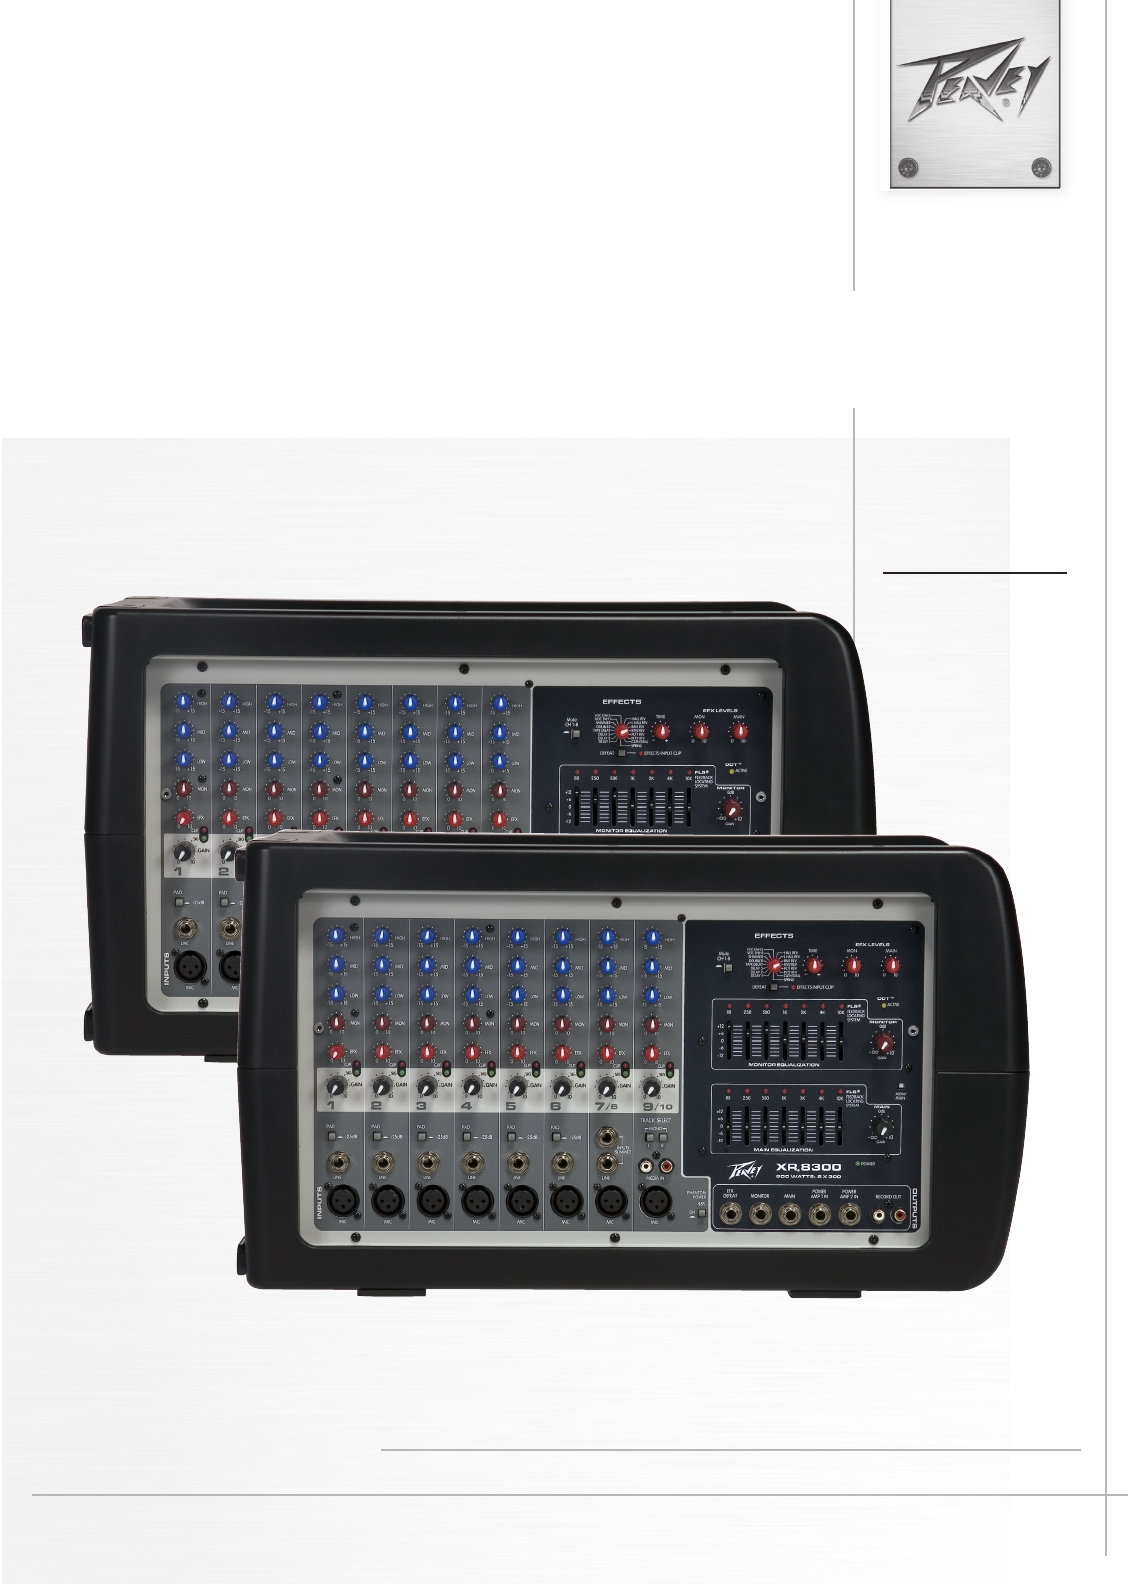 peavey music mixer xr 8300 user guide manualsonline com rh music manualsonline com peavey xr8300 powered mixer review Peavey XR8300 Powered Mixer